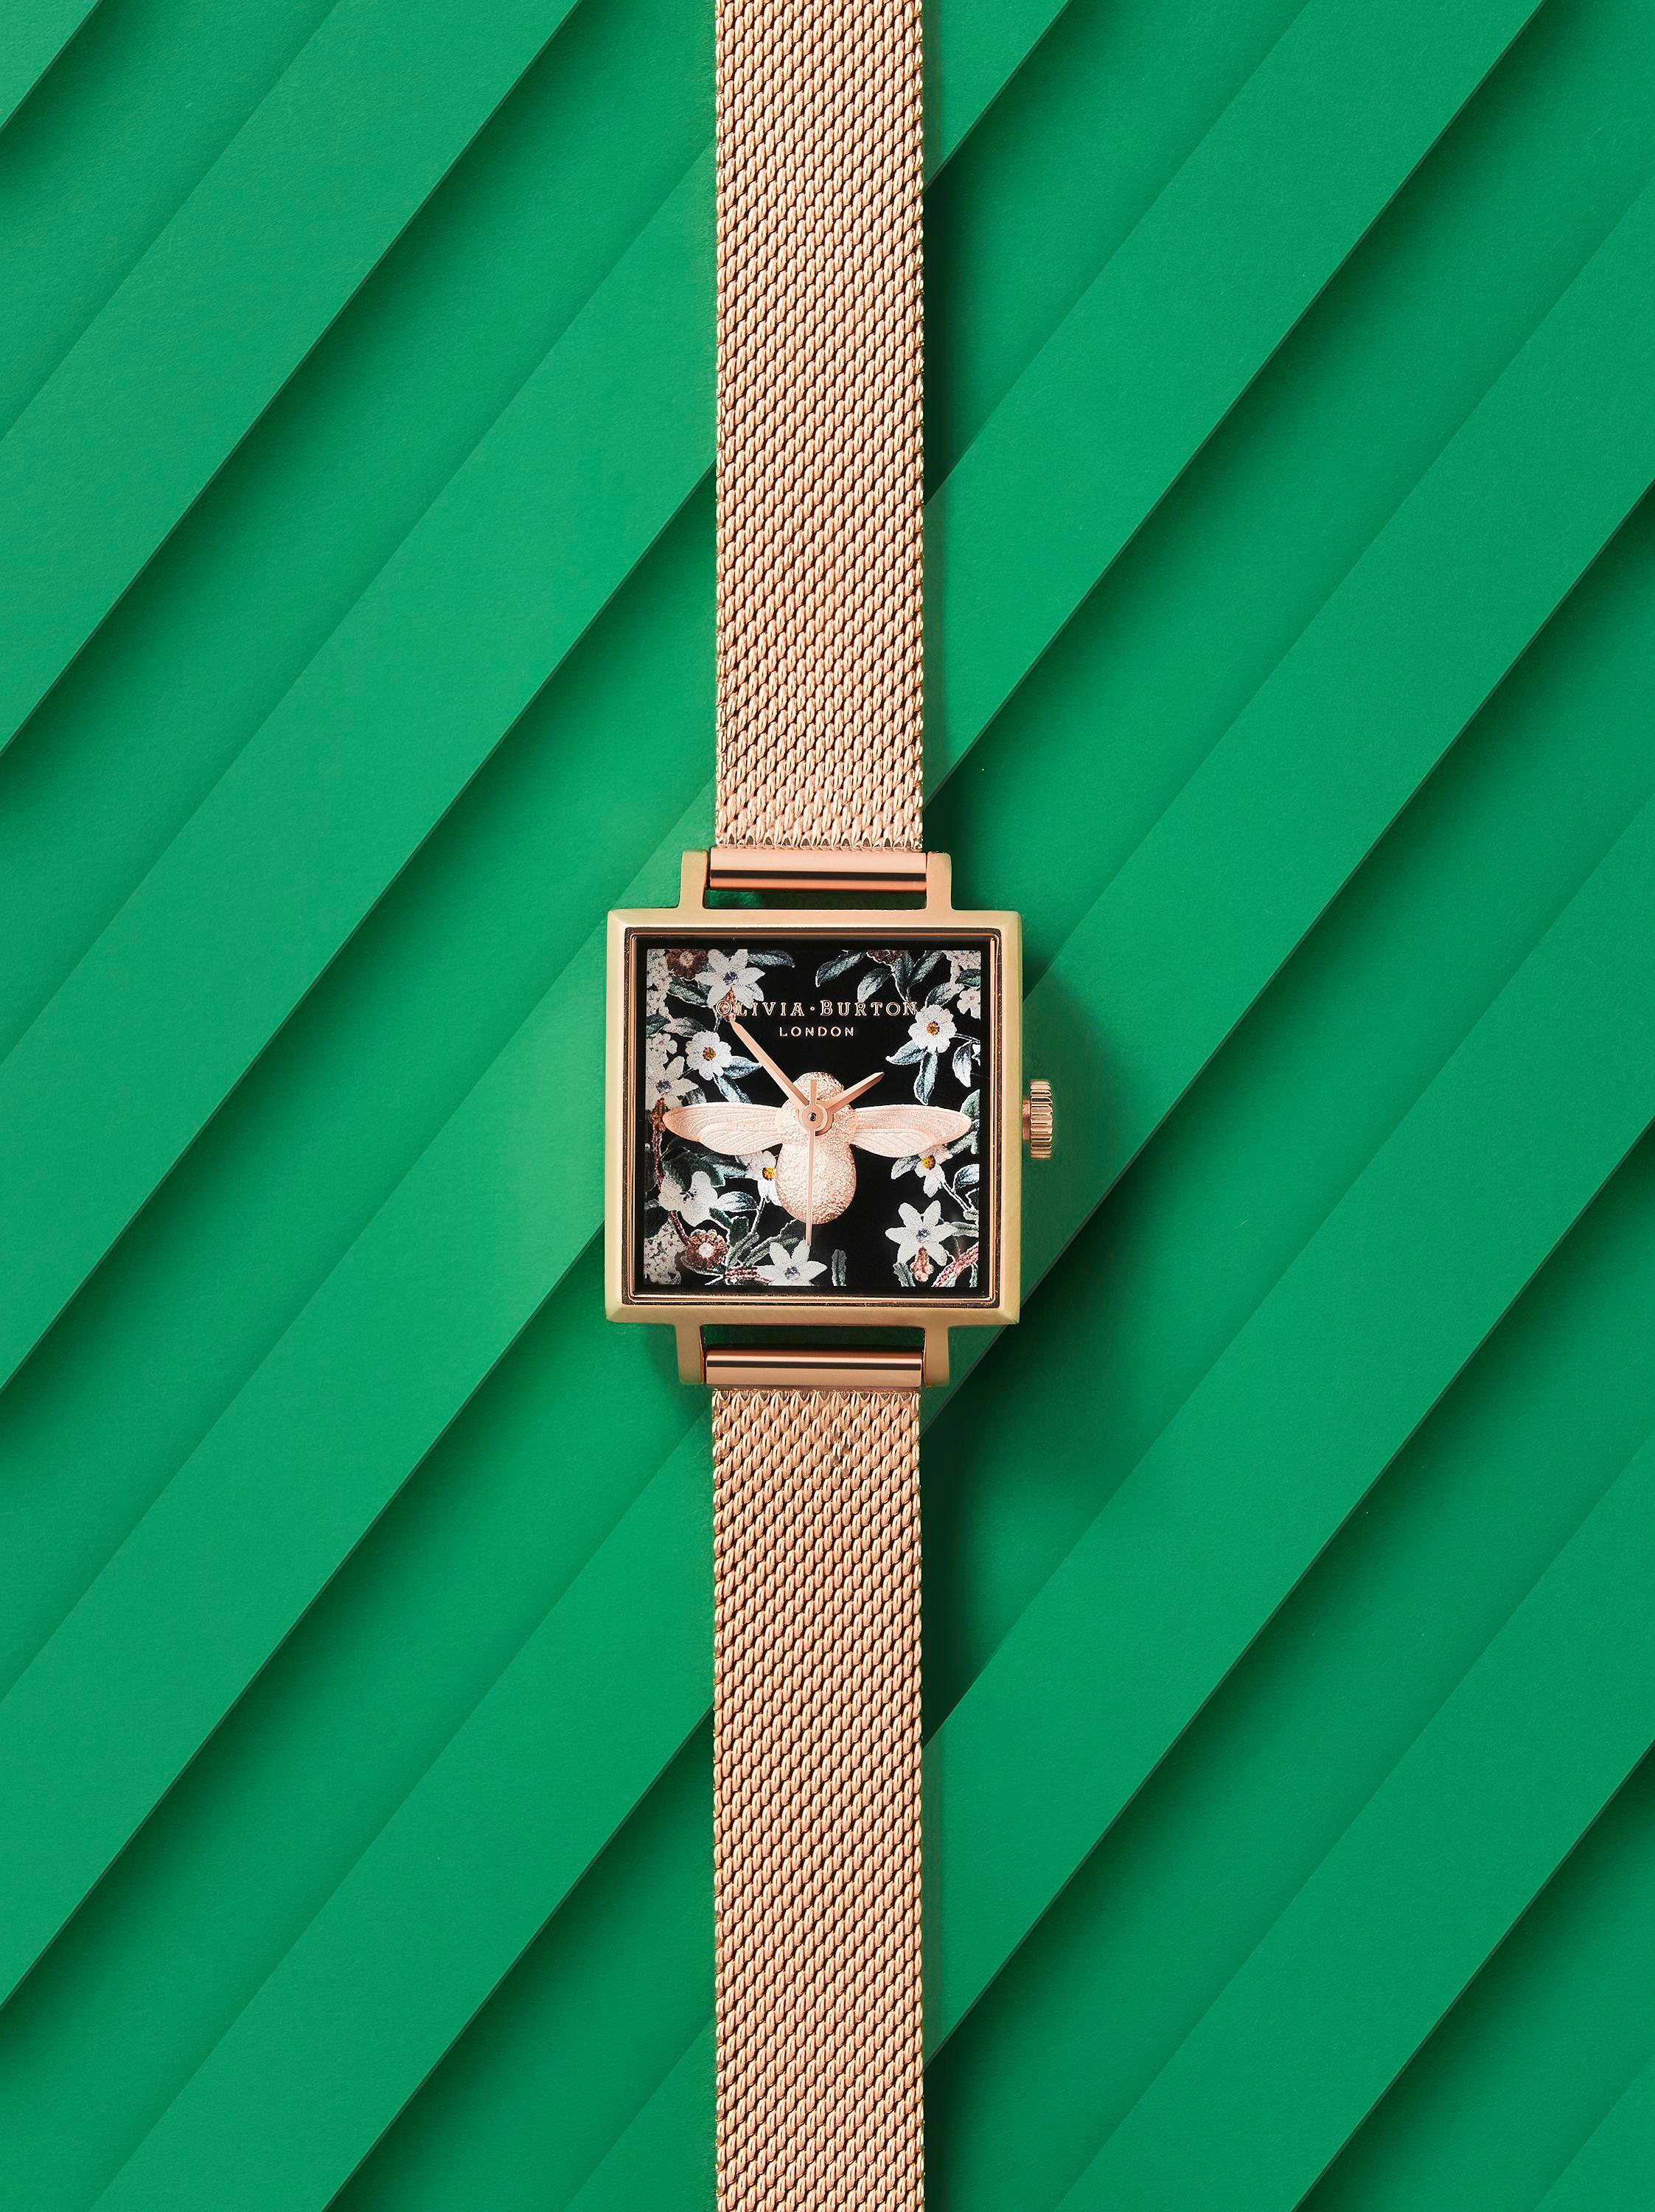 This summering, sweet-as-honey watch is what you need in your life